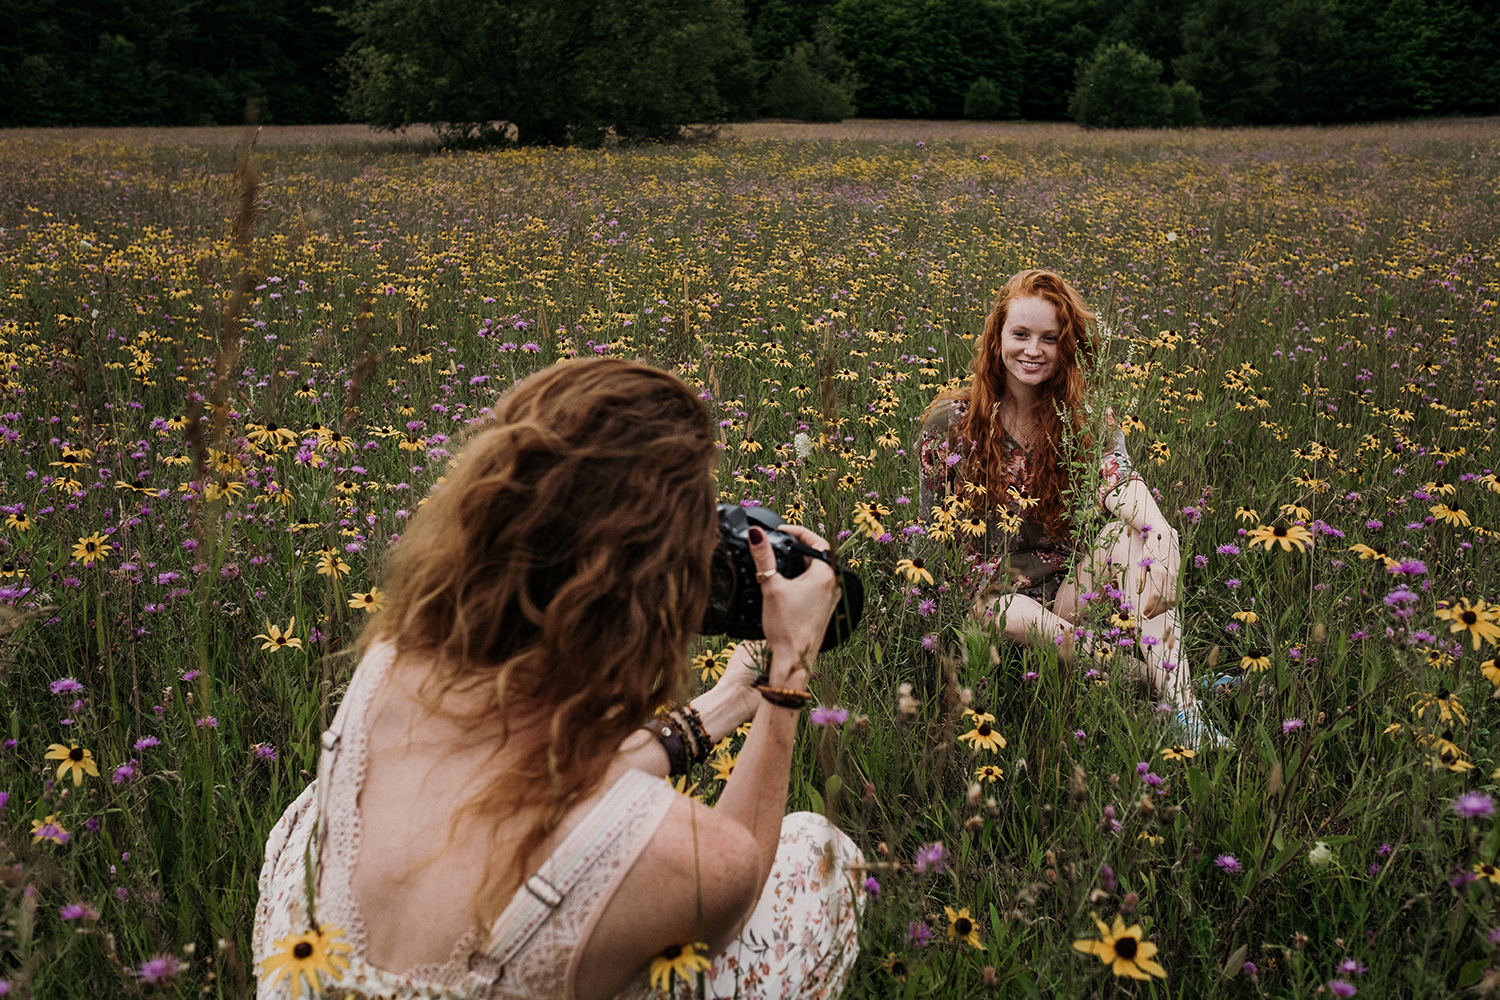 Nicole photographing sister in field of flowers